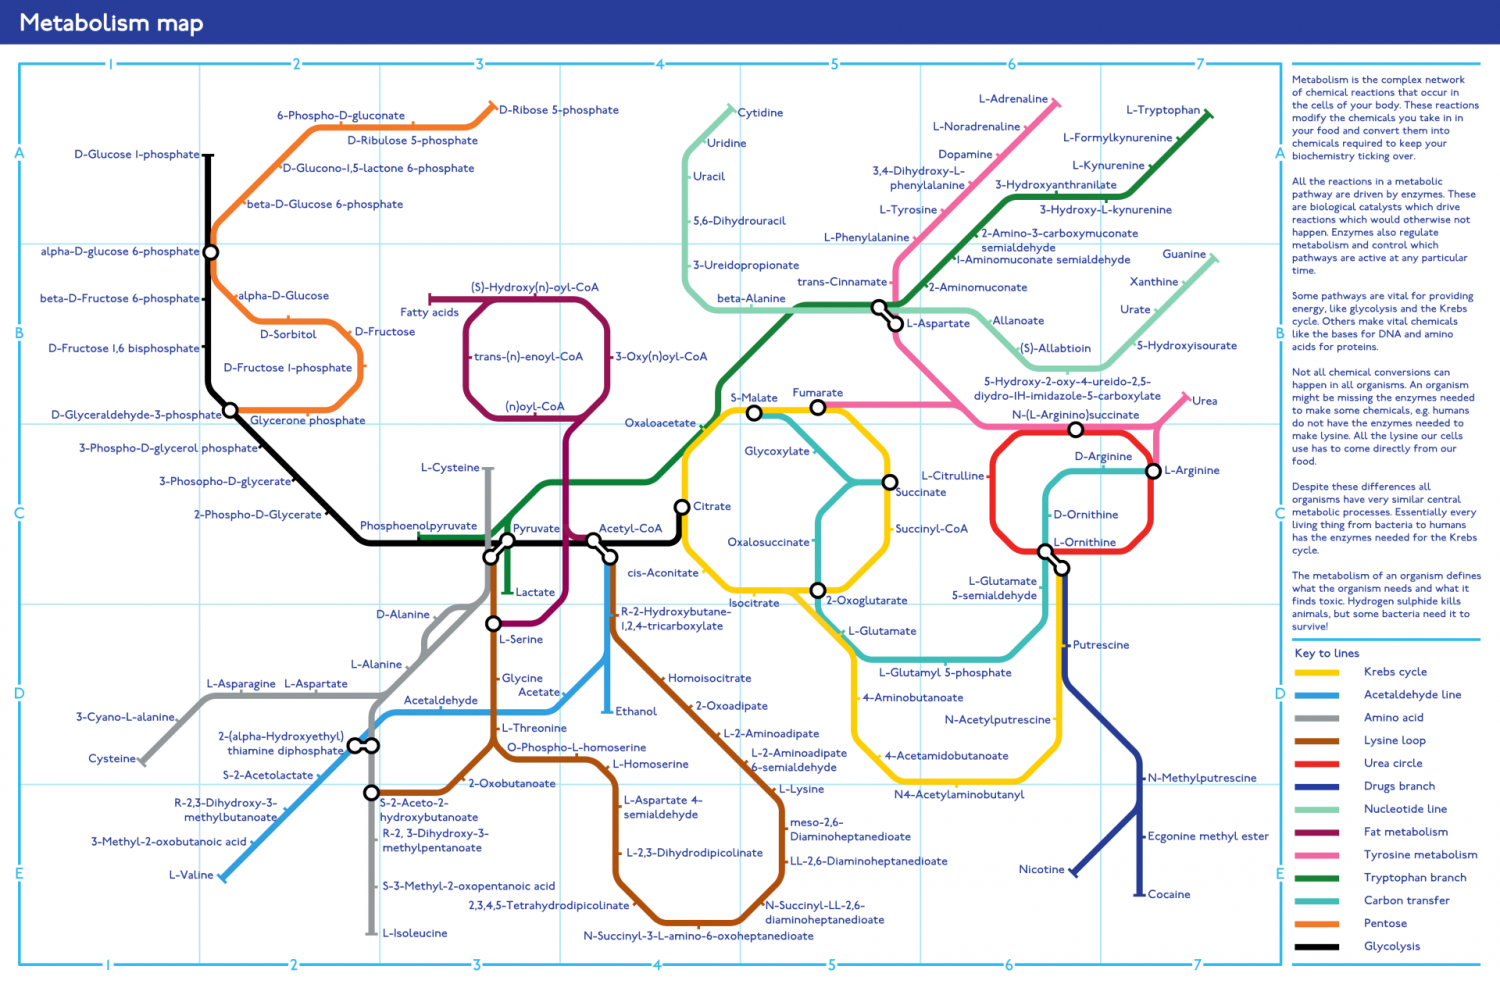 Engineering Knowledge Map : Metabolism map visual ly